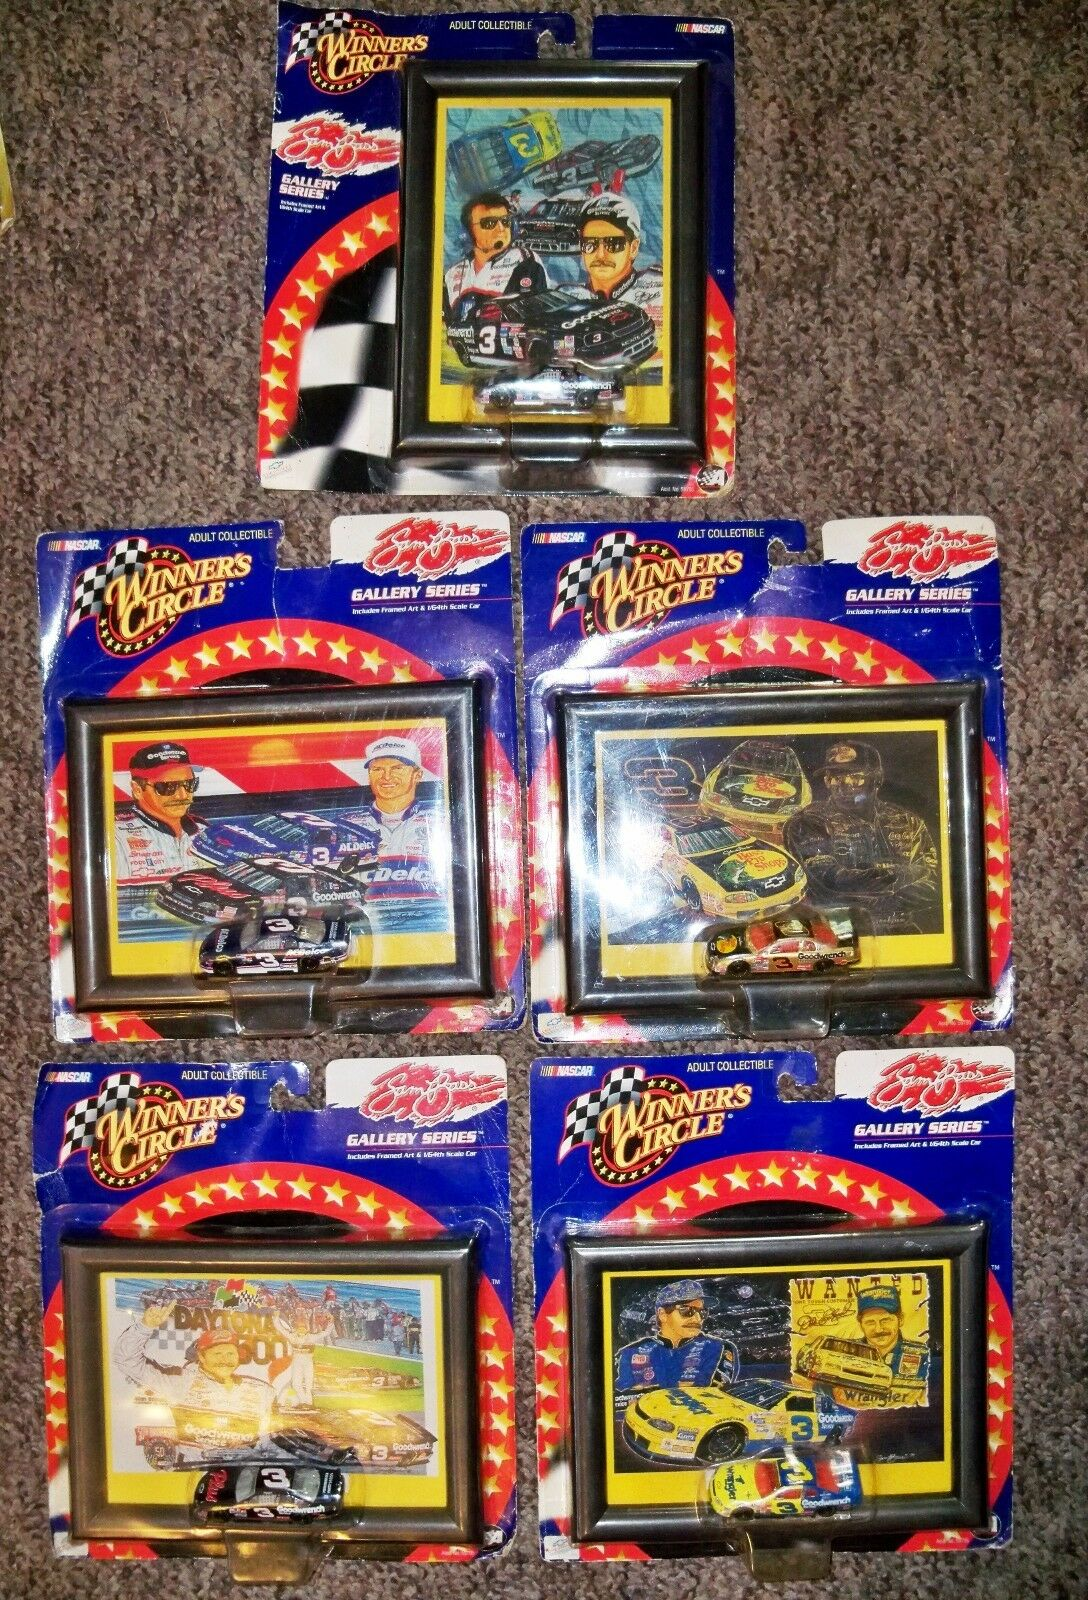 5 New Winner's Circle NASCAR Race Cars & Pictures Pictures Pictures as shown - Earnhardt 29c292